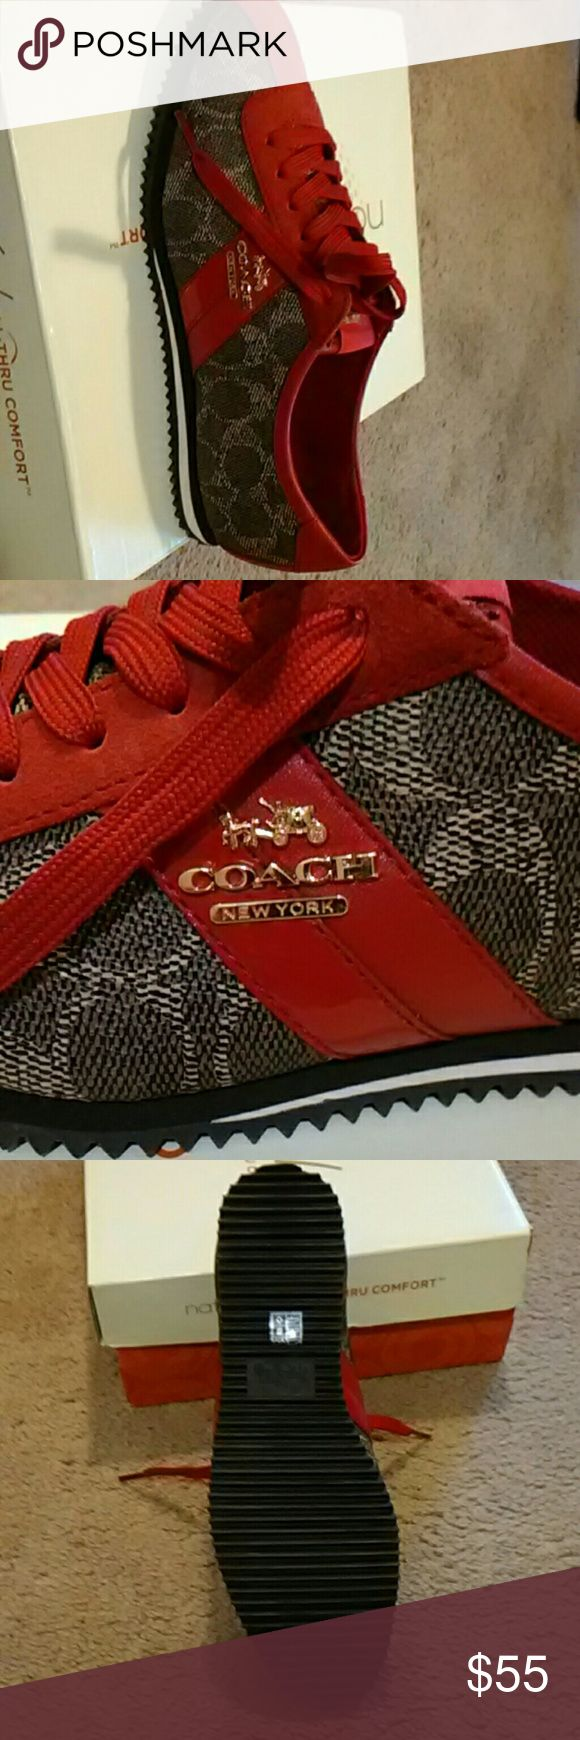 Shoes by coach Red and grey coach shoes Coach Shoes Sneakers